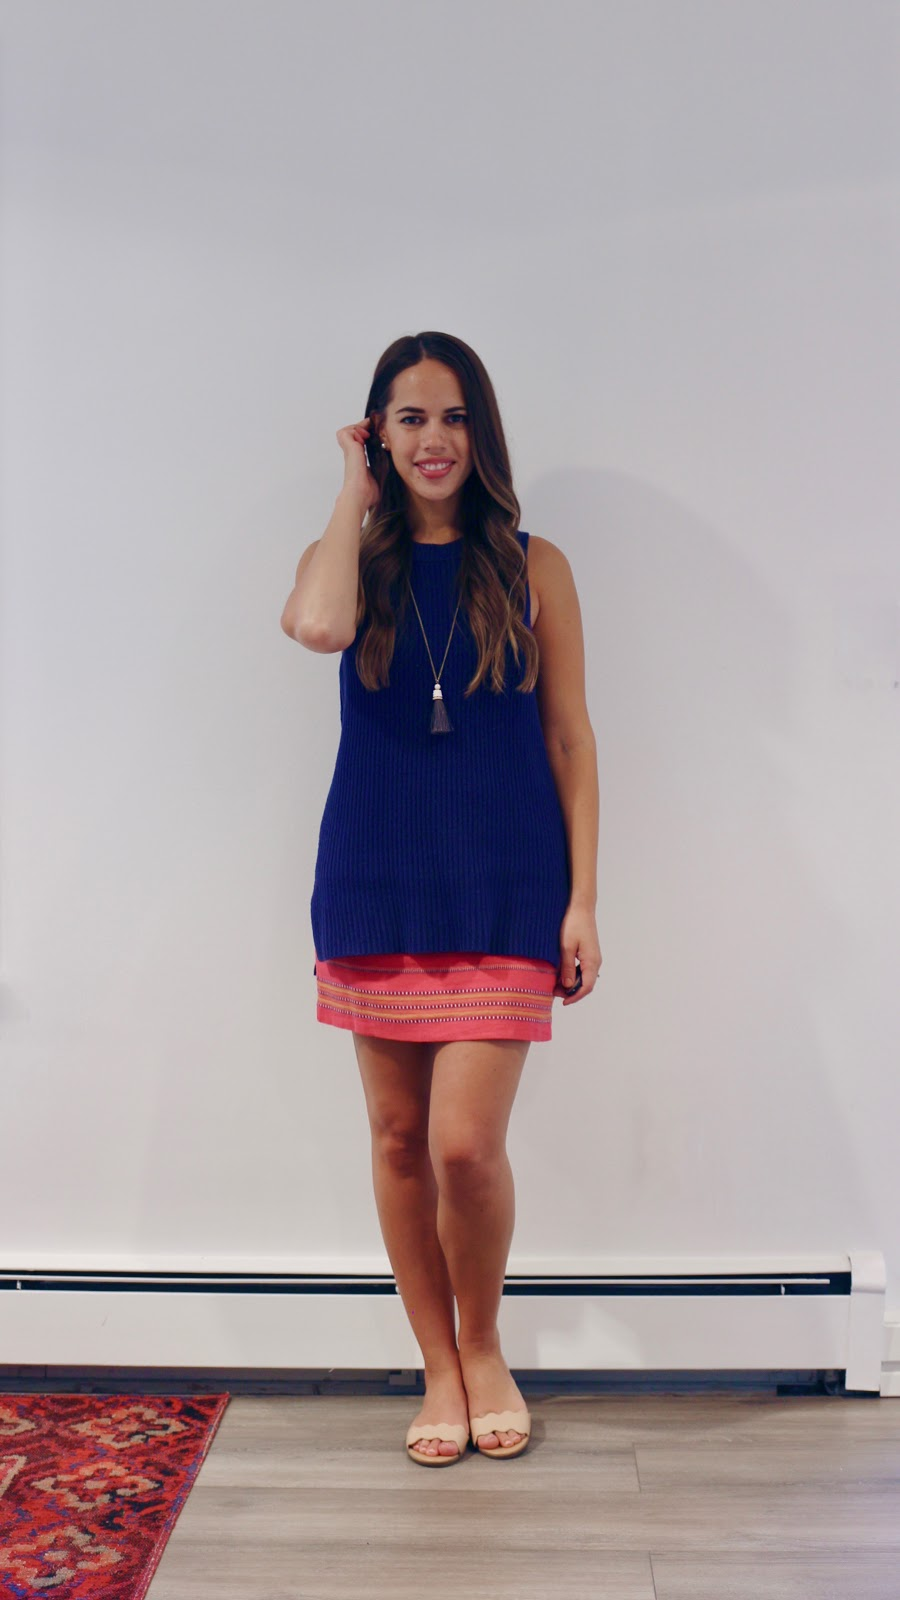 Jules in Flats -  Sleeveless Knit Tunic with Mini Skirt (Business Casual Summer Workwear on a Budget)